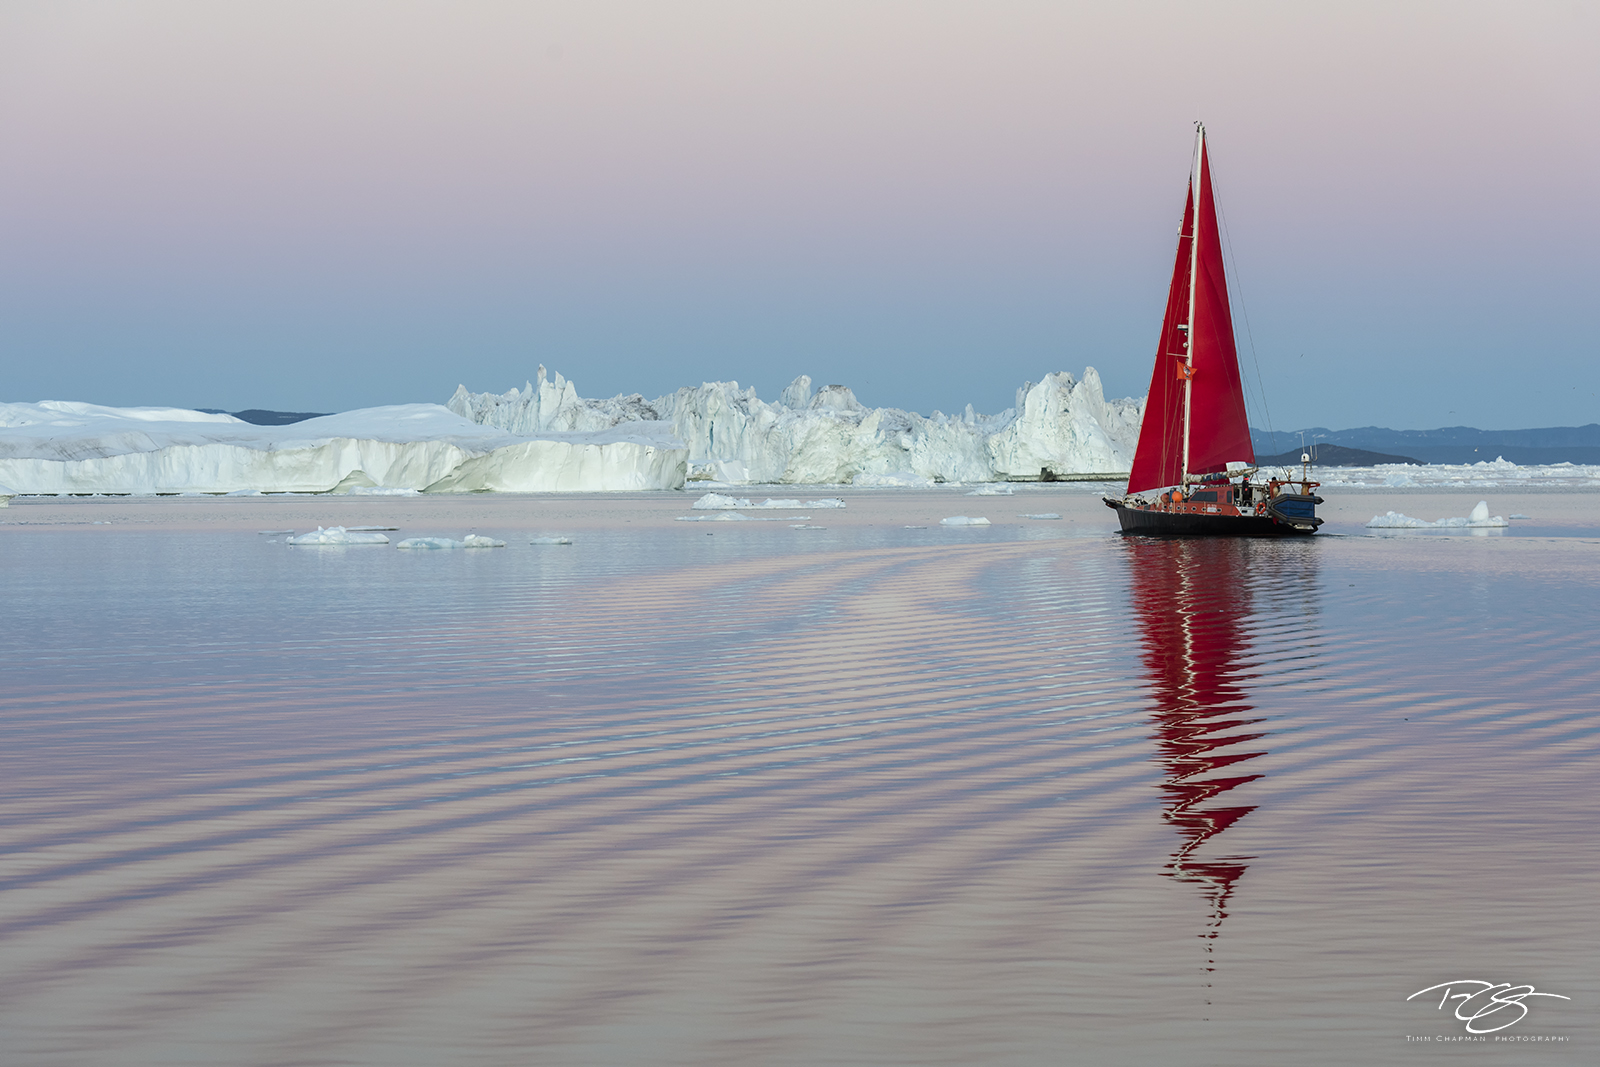 Kangia icefjord; ice; iceberg; disko bay; predawn; dusk; eventide; twilight; icefjord; ship; sailboat; sailing; red sails; schooner; scarlet sails; swizzle, reflection, pastel sky; pink; blue; scarlet, photo